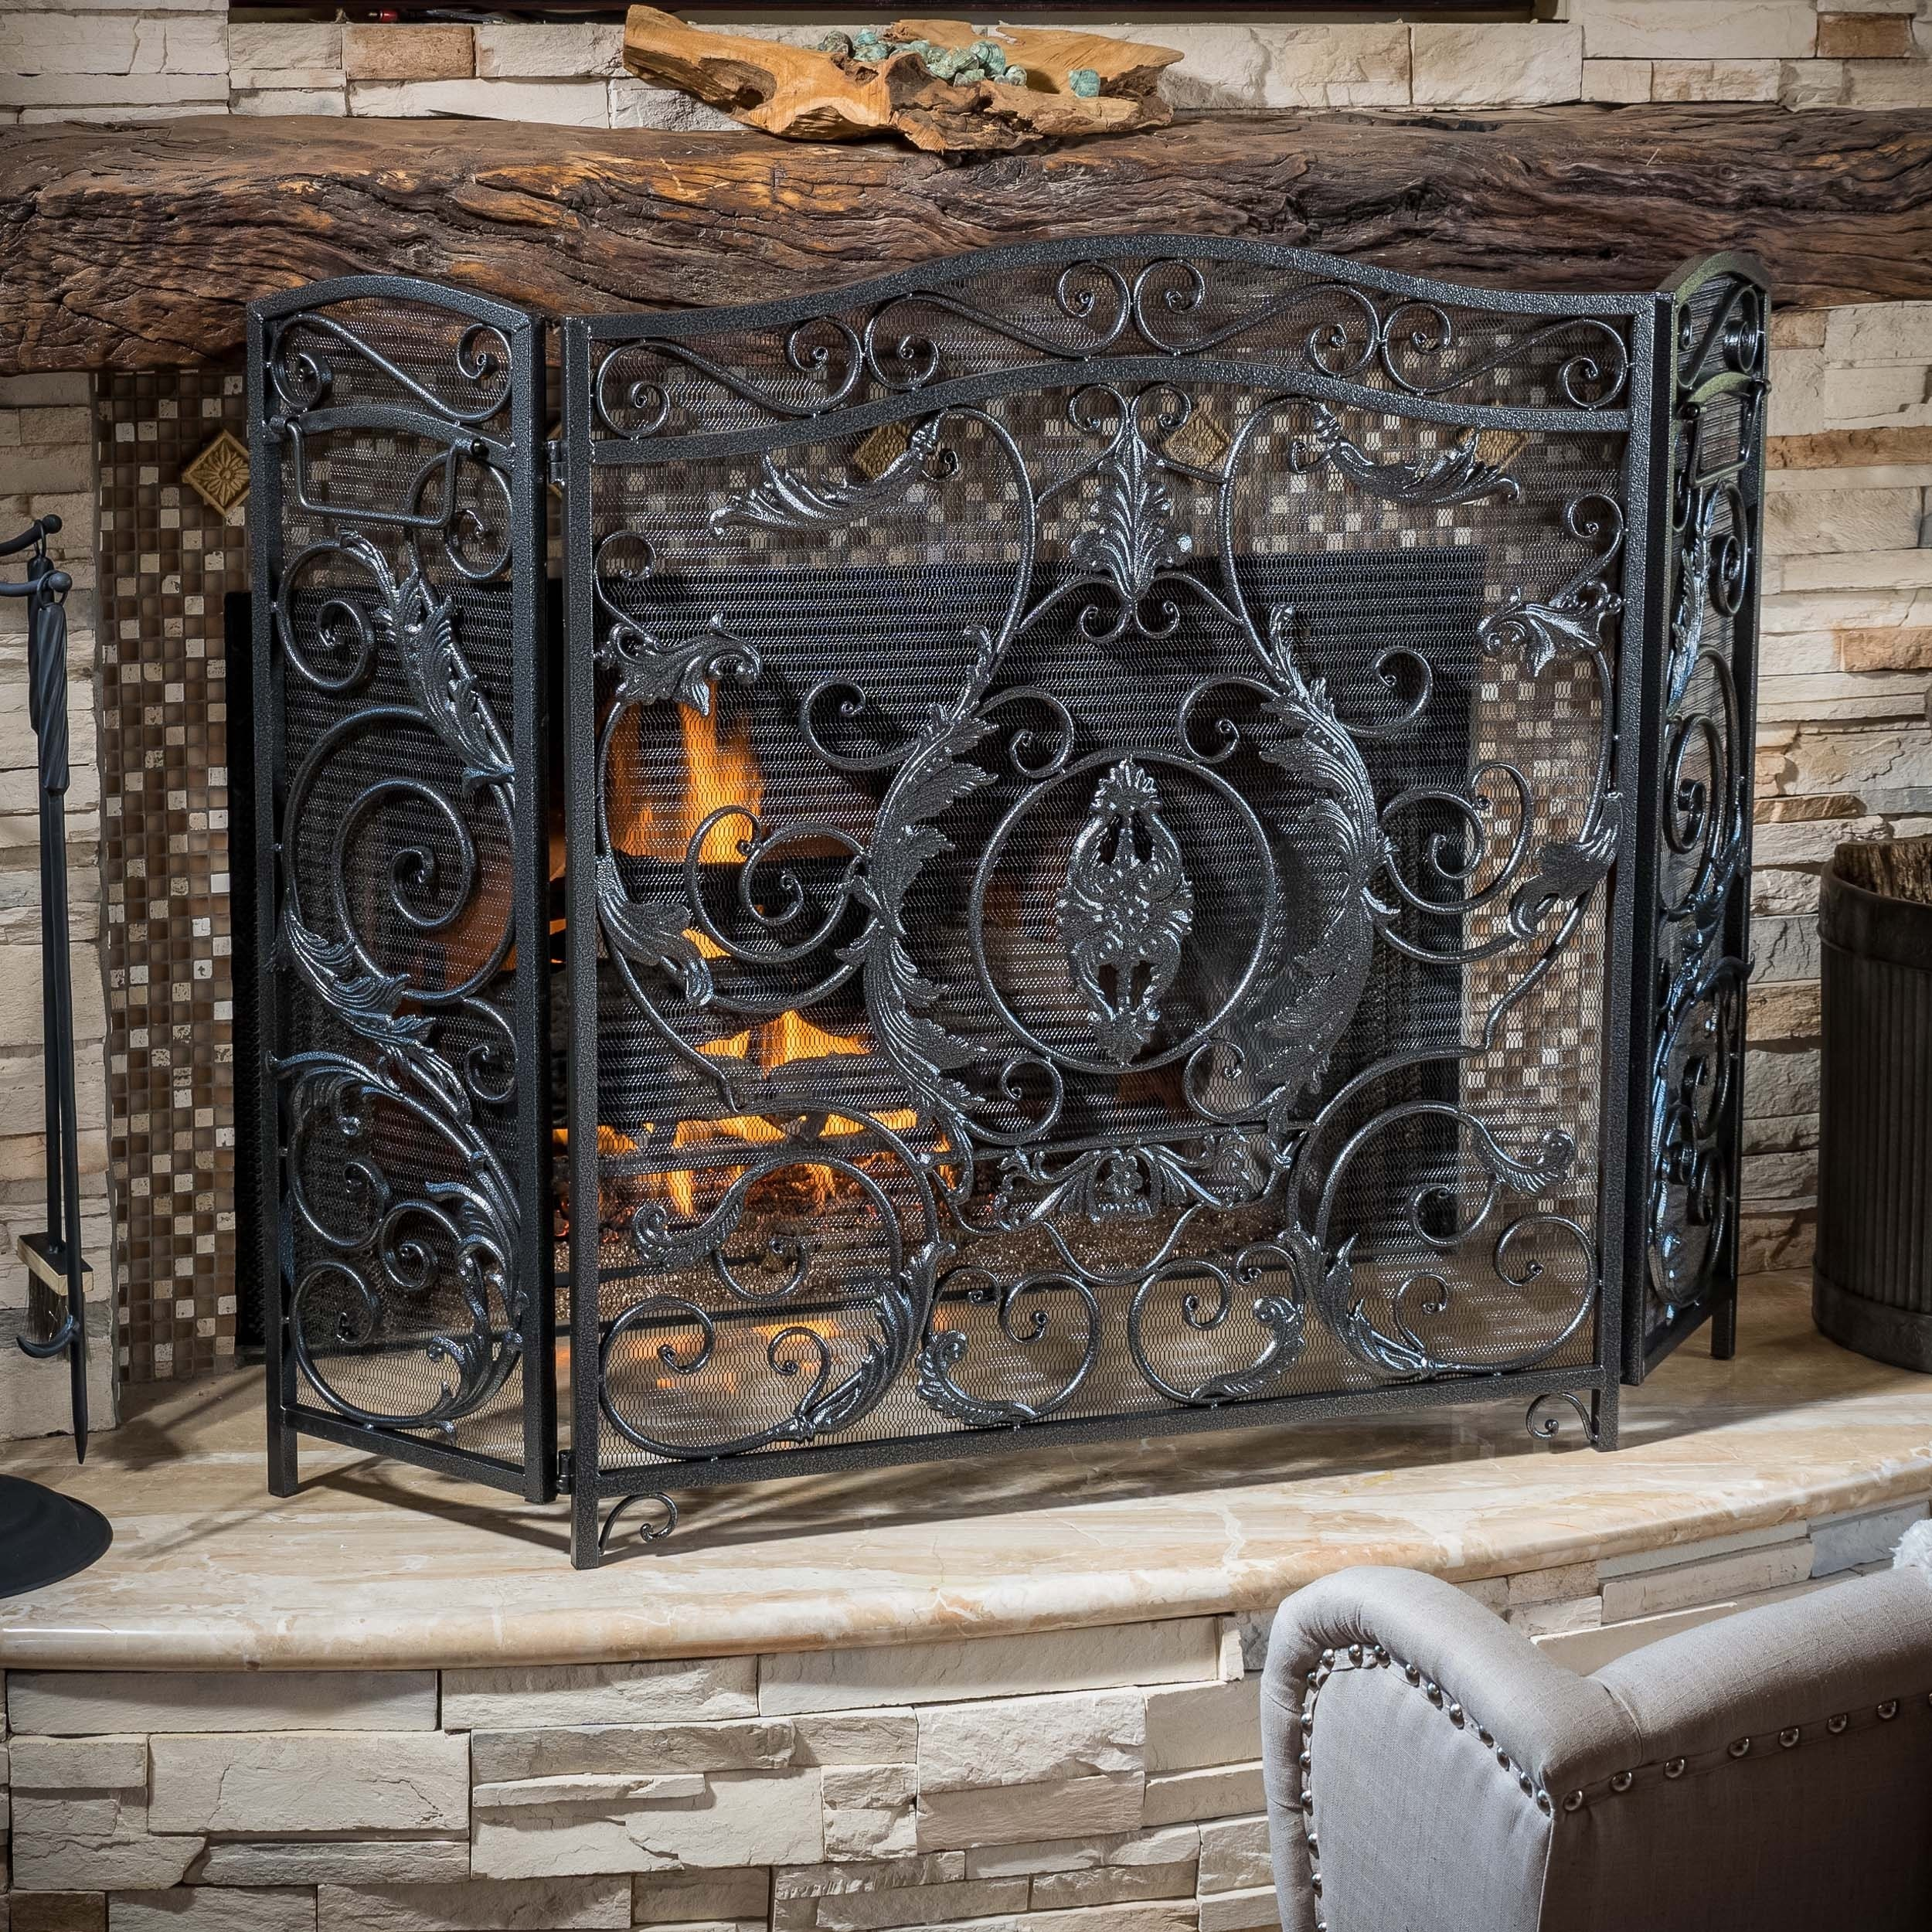 Direct Vent Gas Fireplace Ratings Buy Direct Vent Fireplaces Online At Overstock Our Best